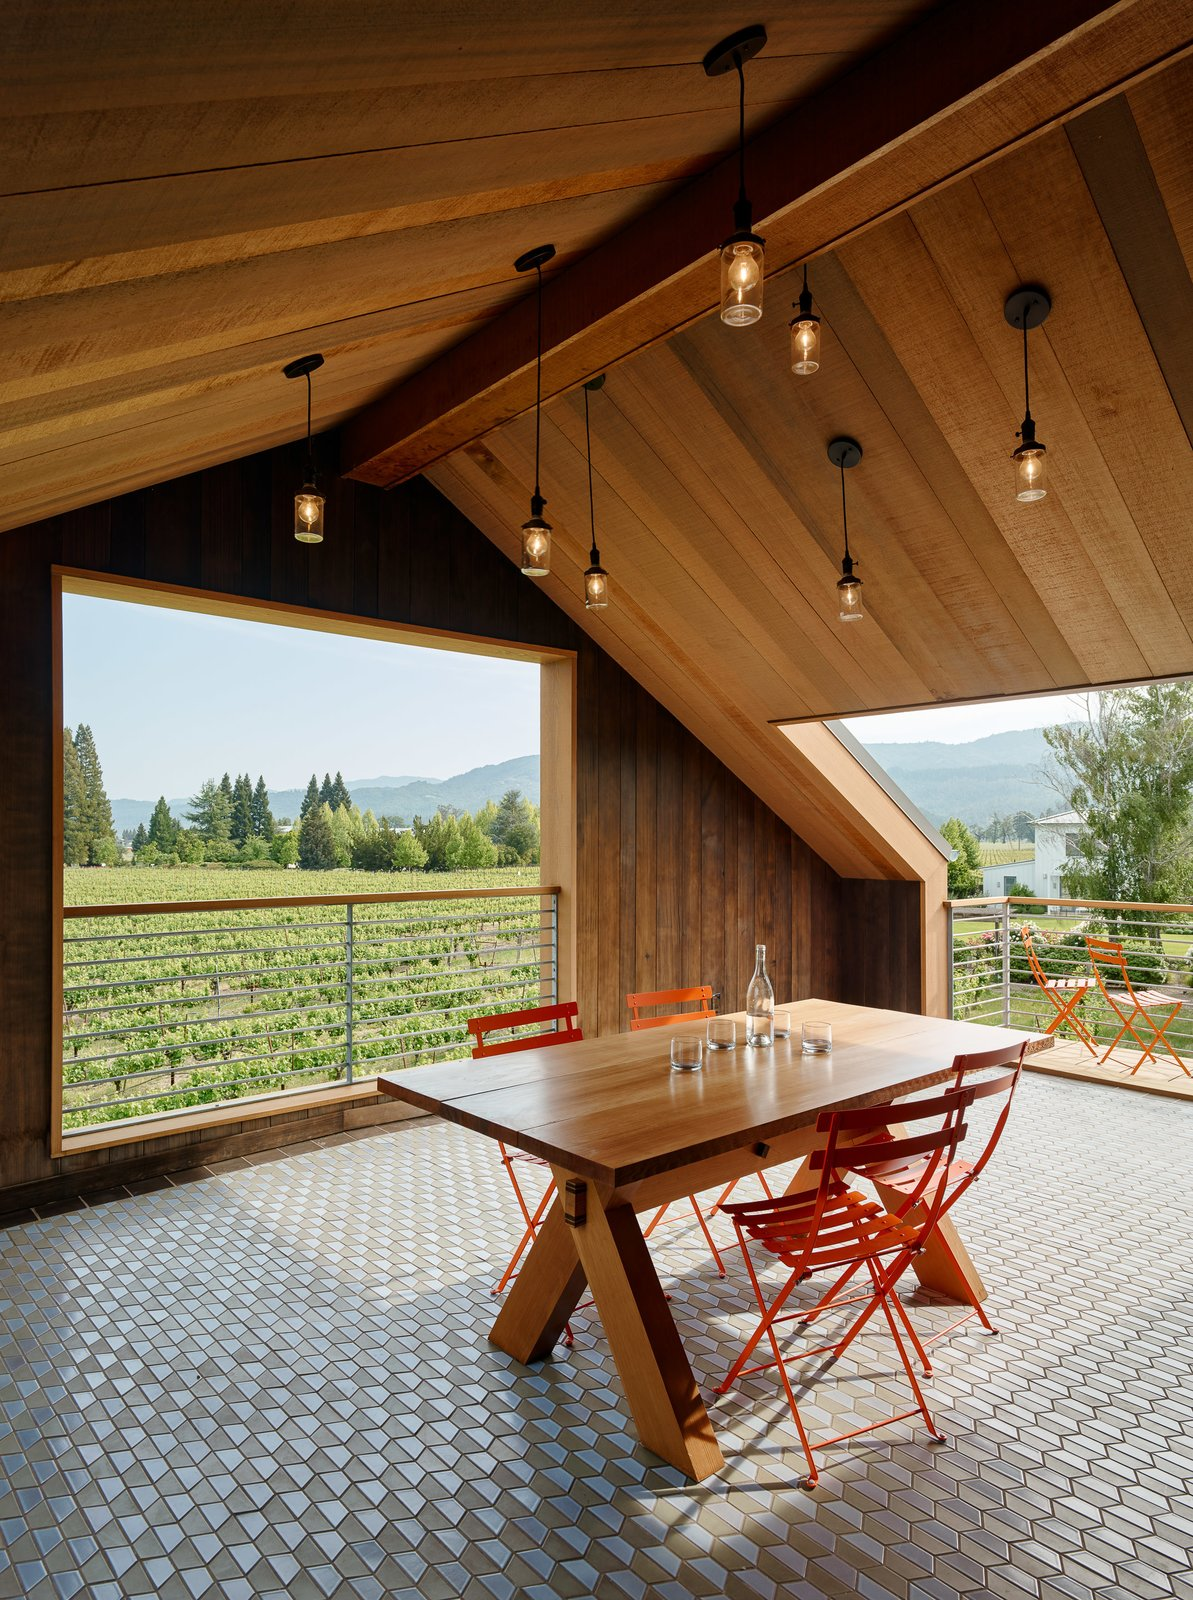 Photo 2 of 6 in Top 5 Homes of the Week With Amazing Outdoor Spaces from Napa Barn